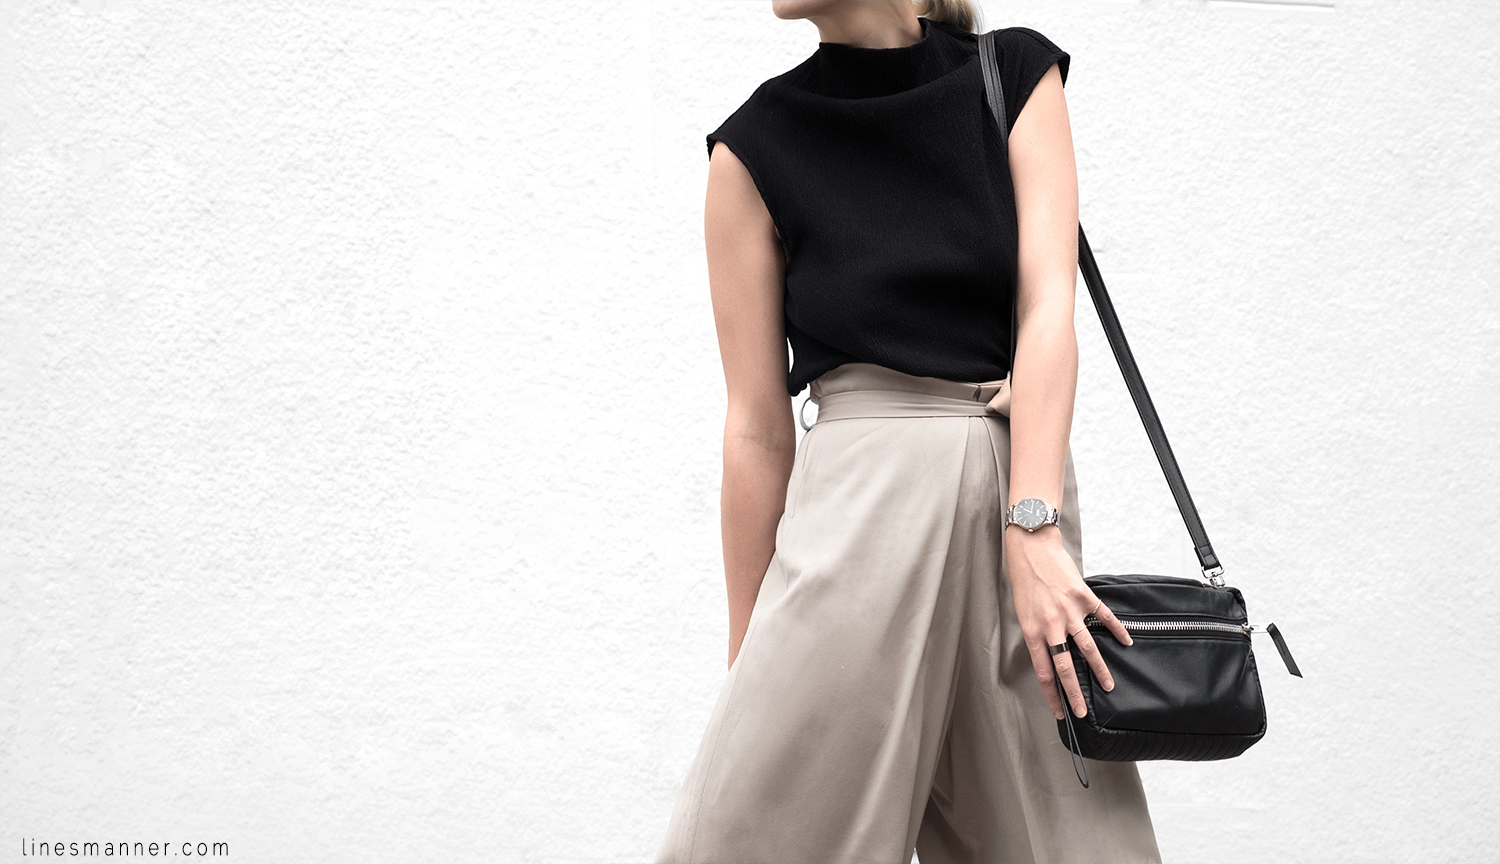 Lines-Manner-Neutrals-Quality-Lora_Gene-Wide_Leg_Pant-Modern-Sophistication-Tailored-Essentials-Details-Simplicity-Summer_vibes-Volume-Proportion-Flowy-2